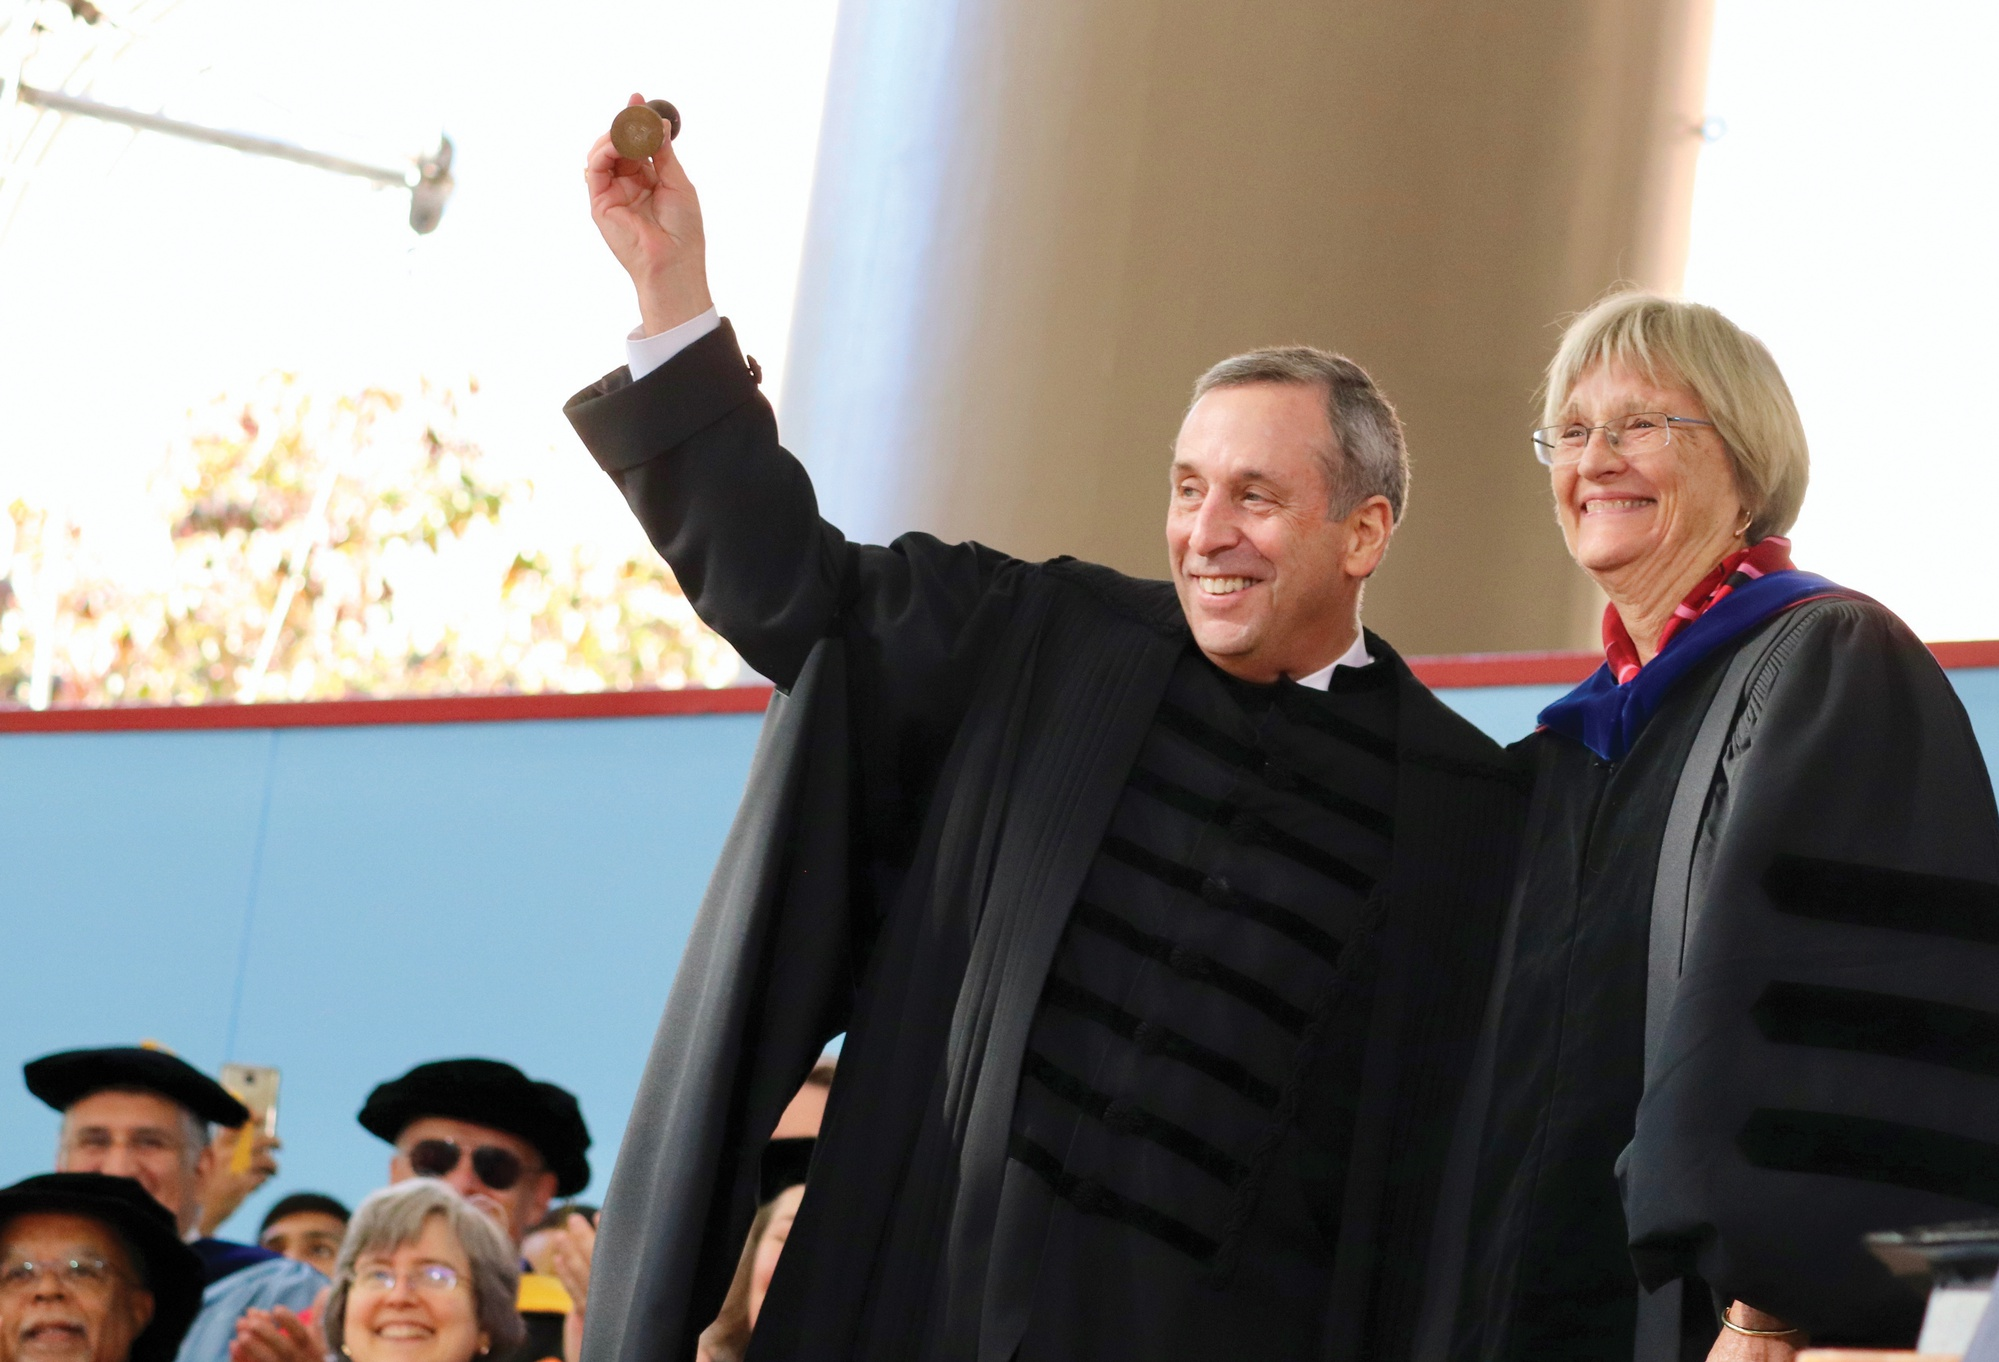 Lawrence S. Bacow was sworn in as Harvard's 29th president Friday in a ceremony attended by four University presidents.